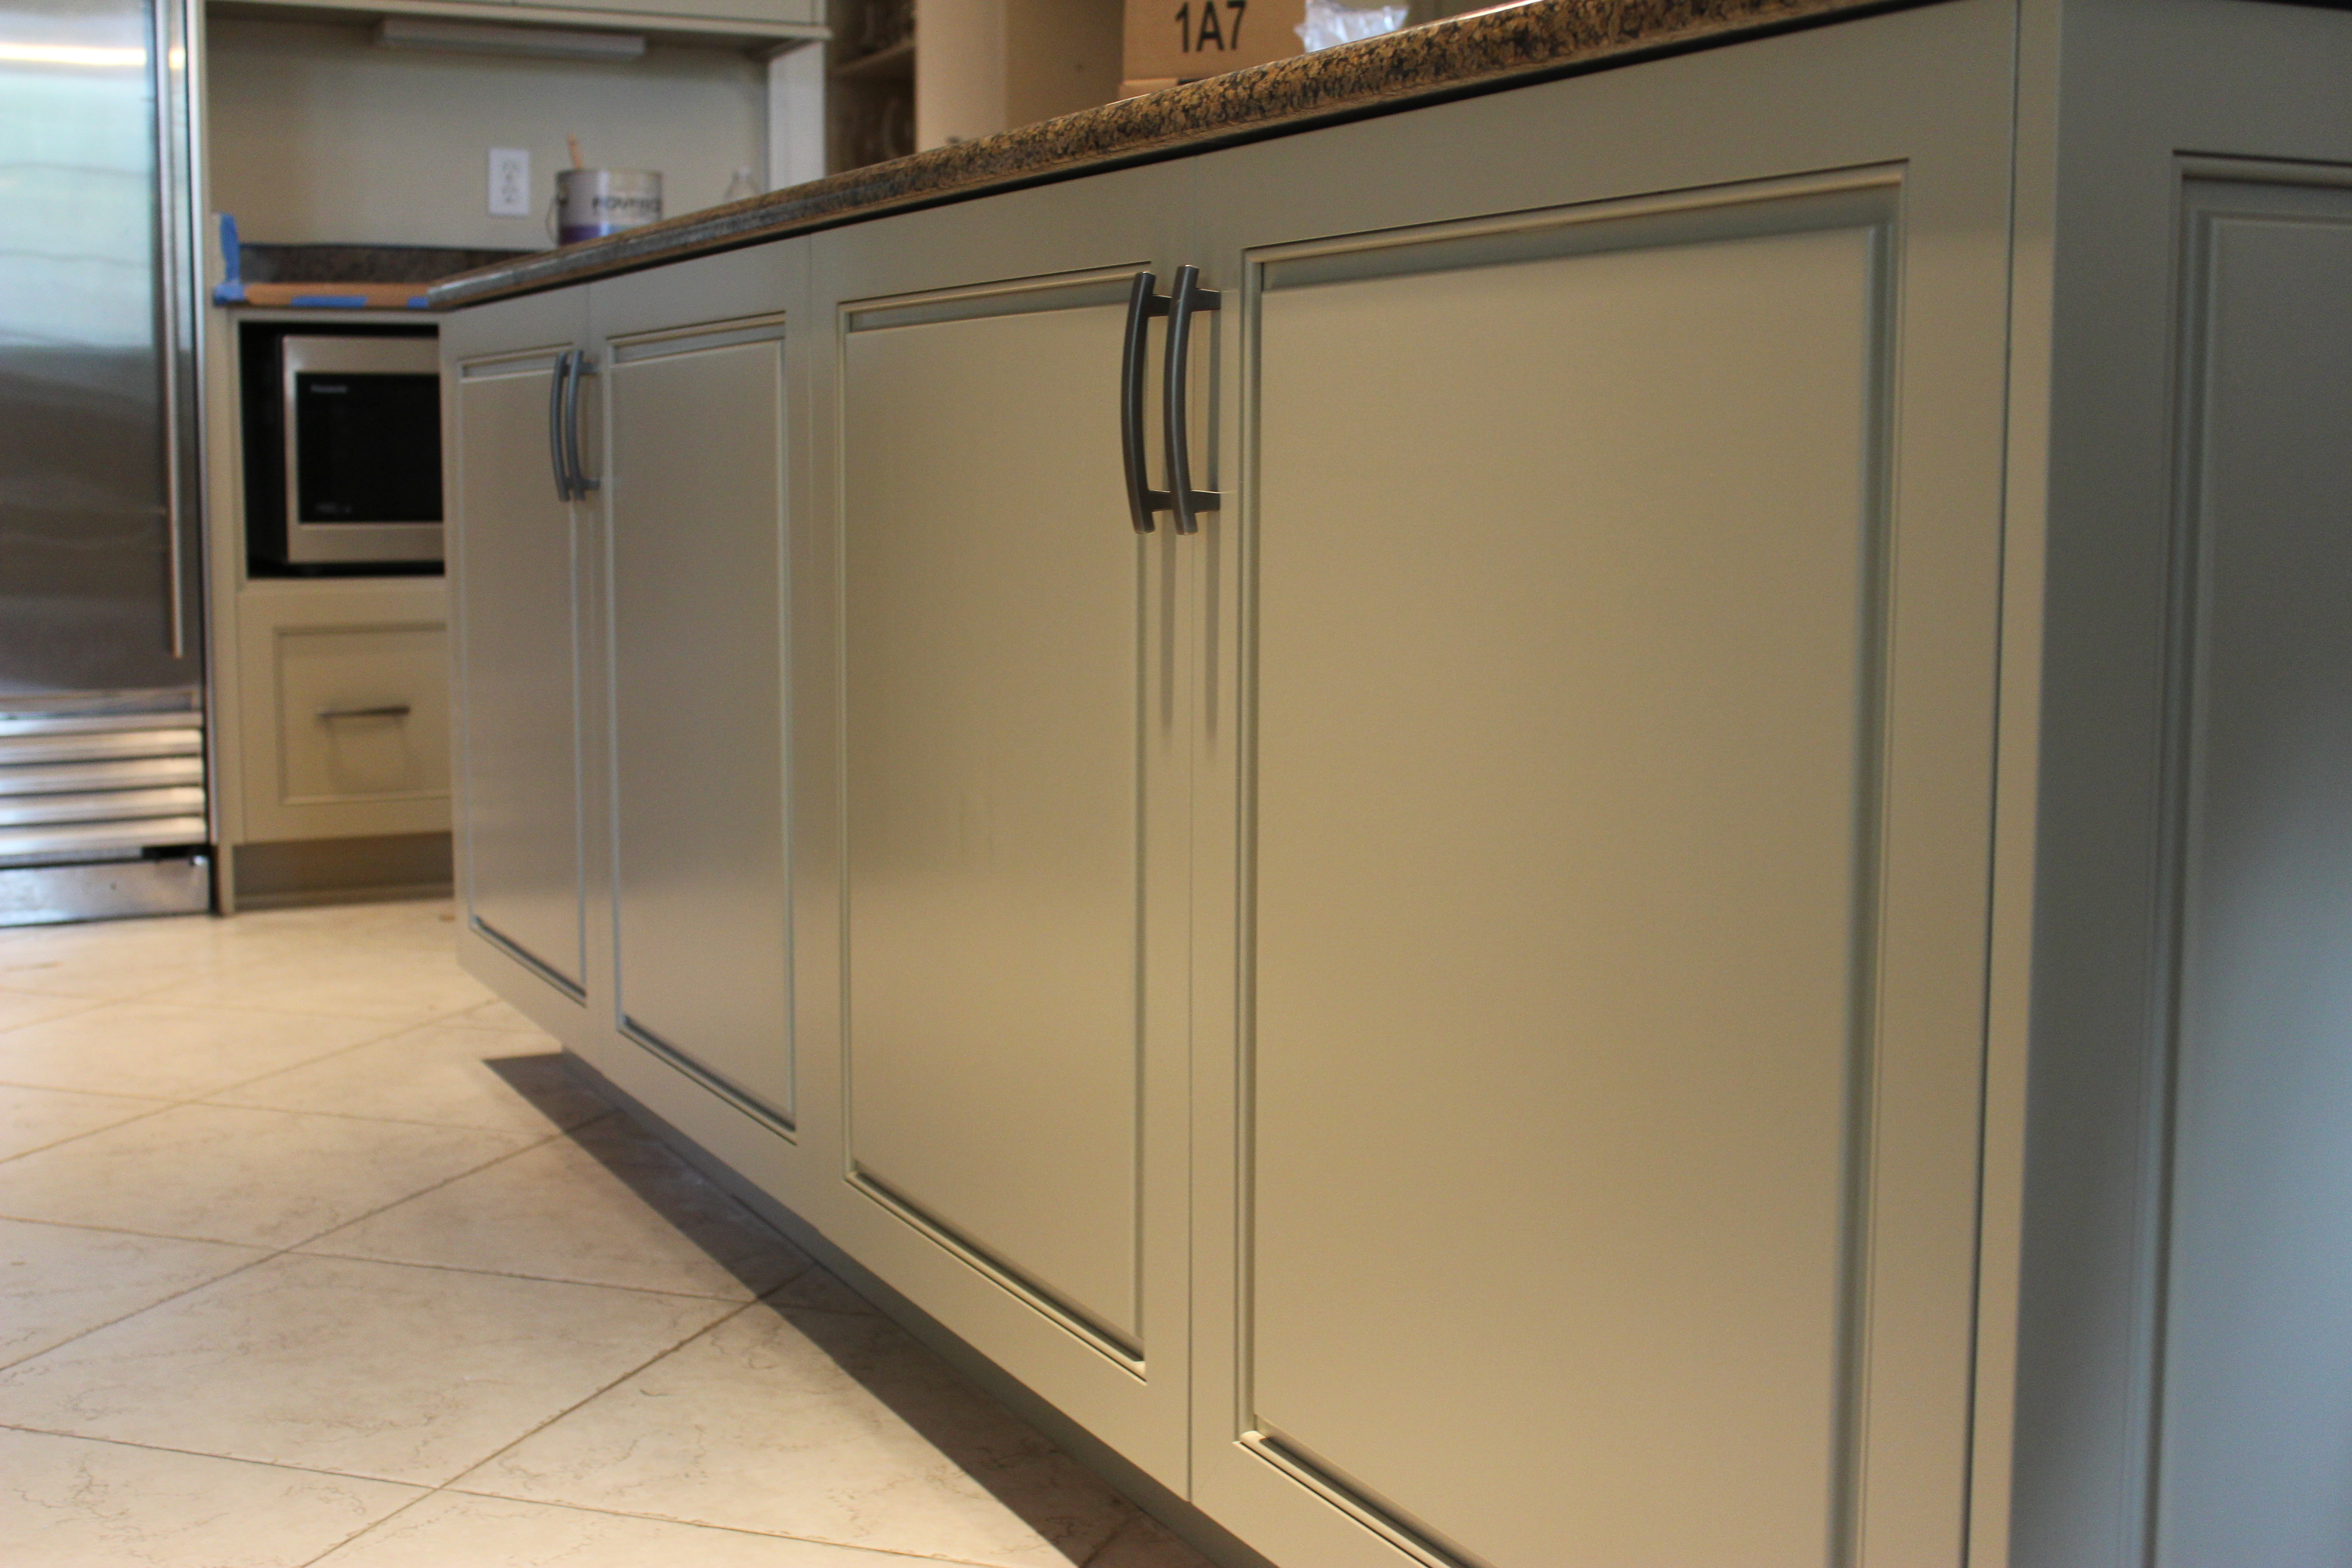 Painting Kitchen Cabinets Estimate Jason Bertoniere Painting Contractor Blog Archive